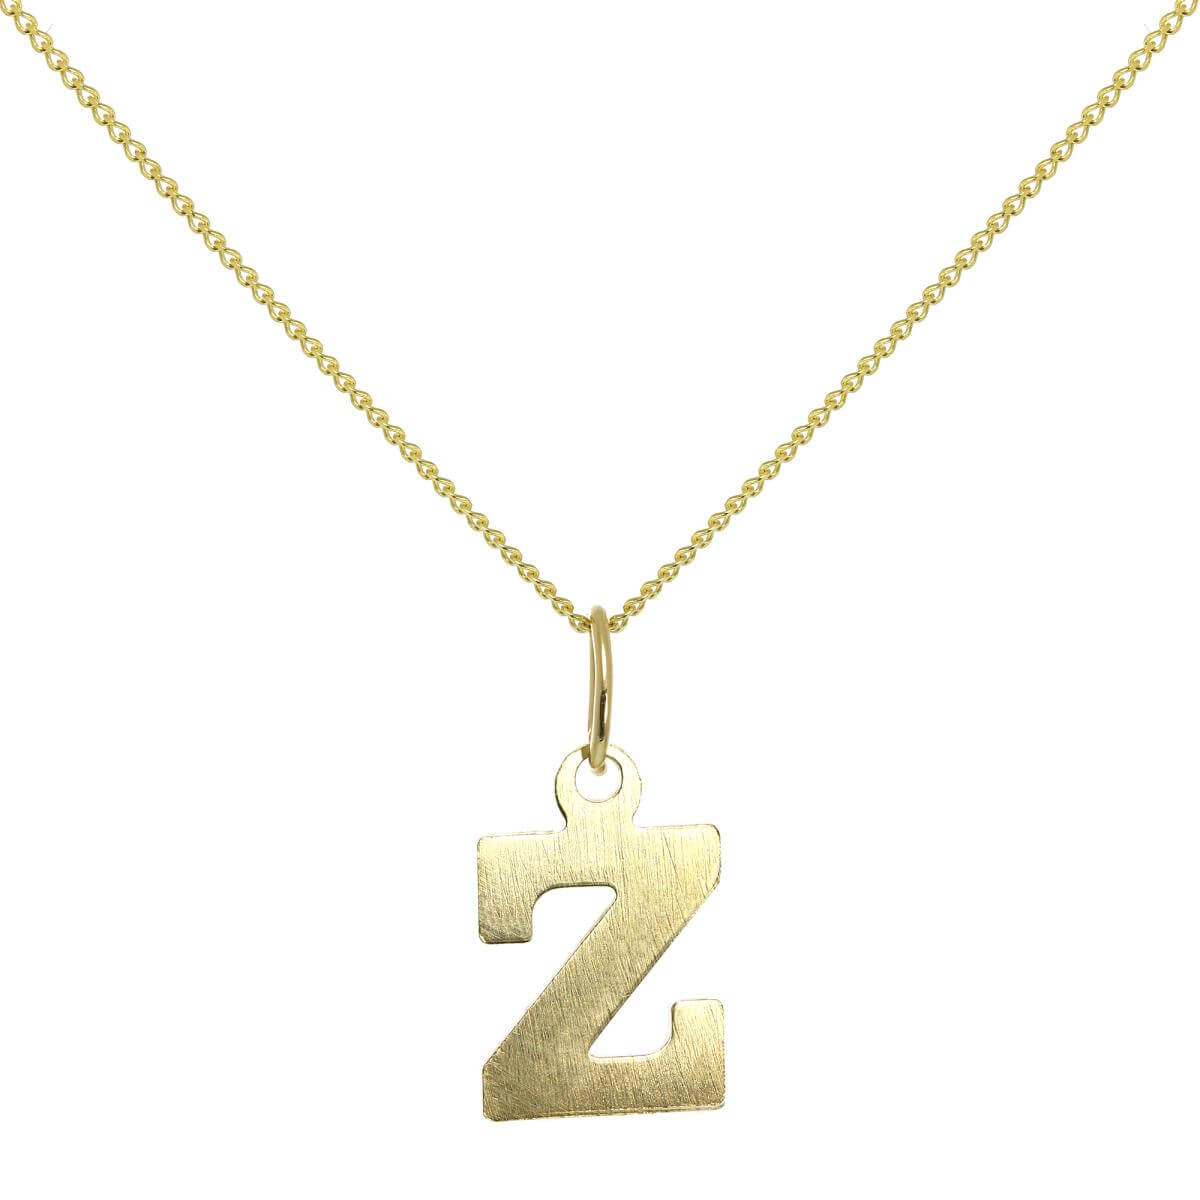 Lightweight 9ct Gold Initial Letter Z Charm - 20 Inches